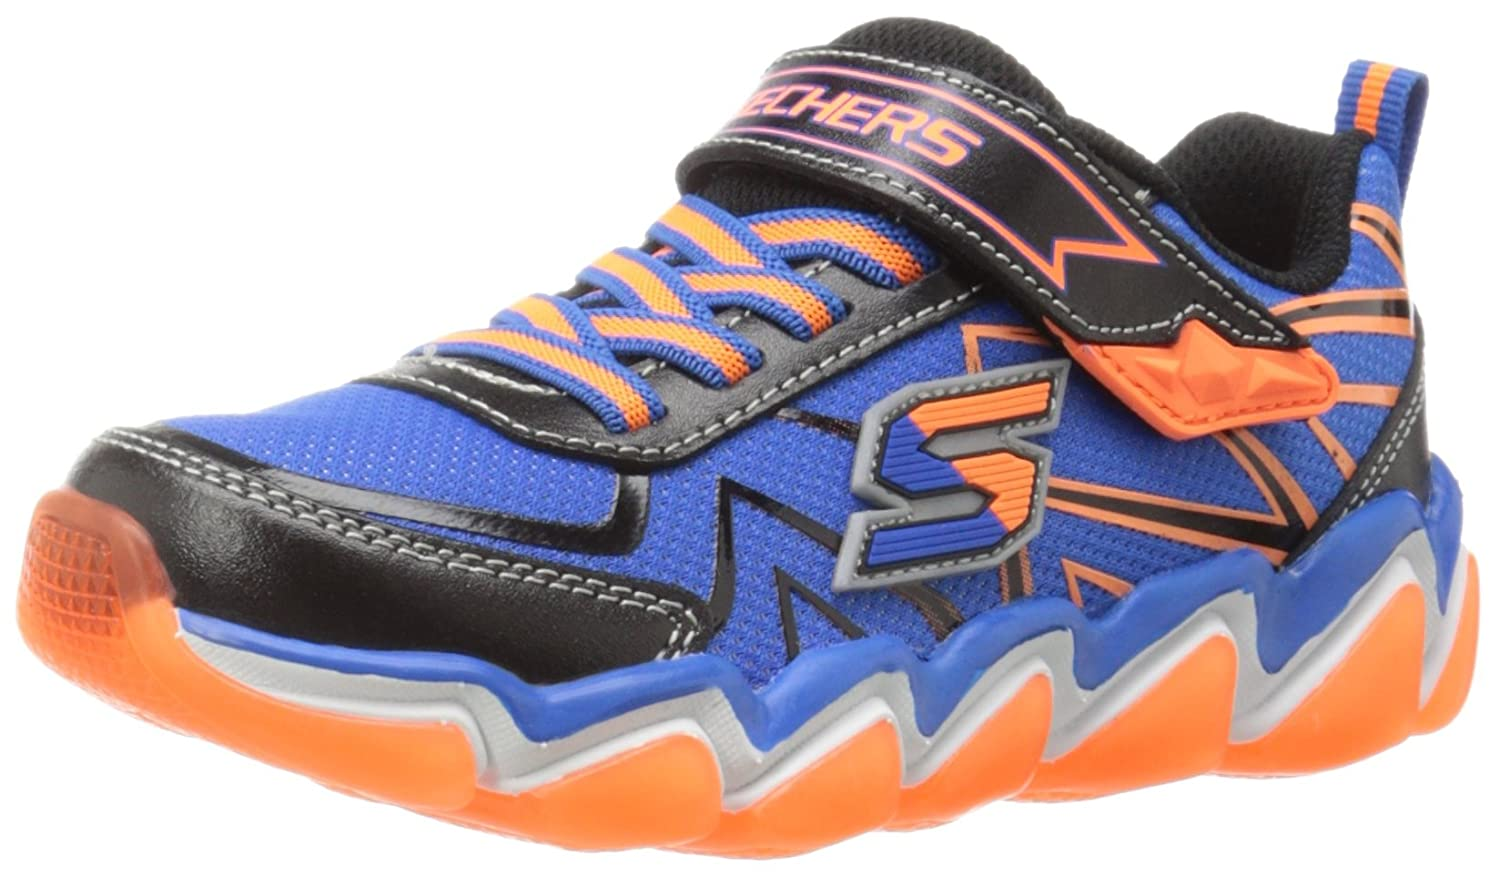 Skechers 97411 073 SKECHAIR 3 97411 Blau-schwarz-Orange Kids Everyday schuhe, schwarz Blau Orange, 10.5 UK M Little Kid